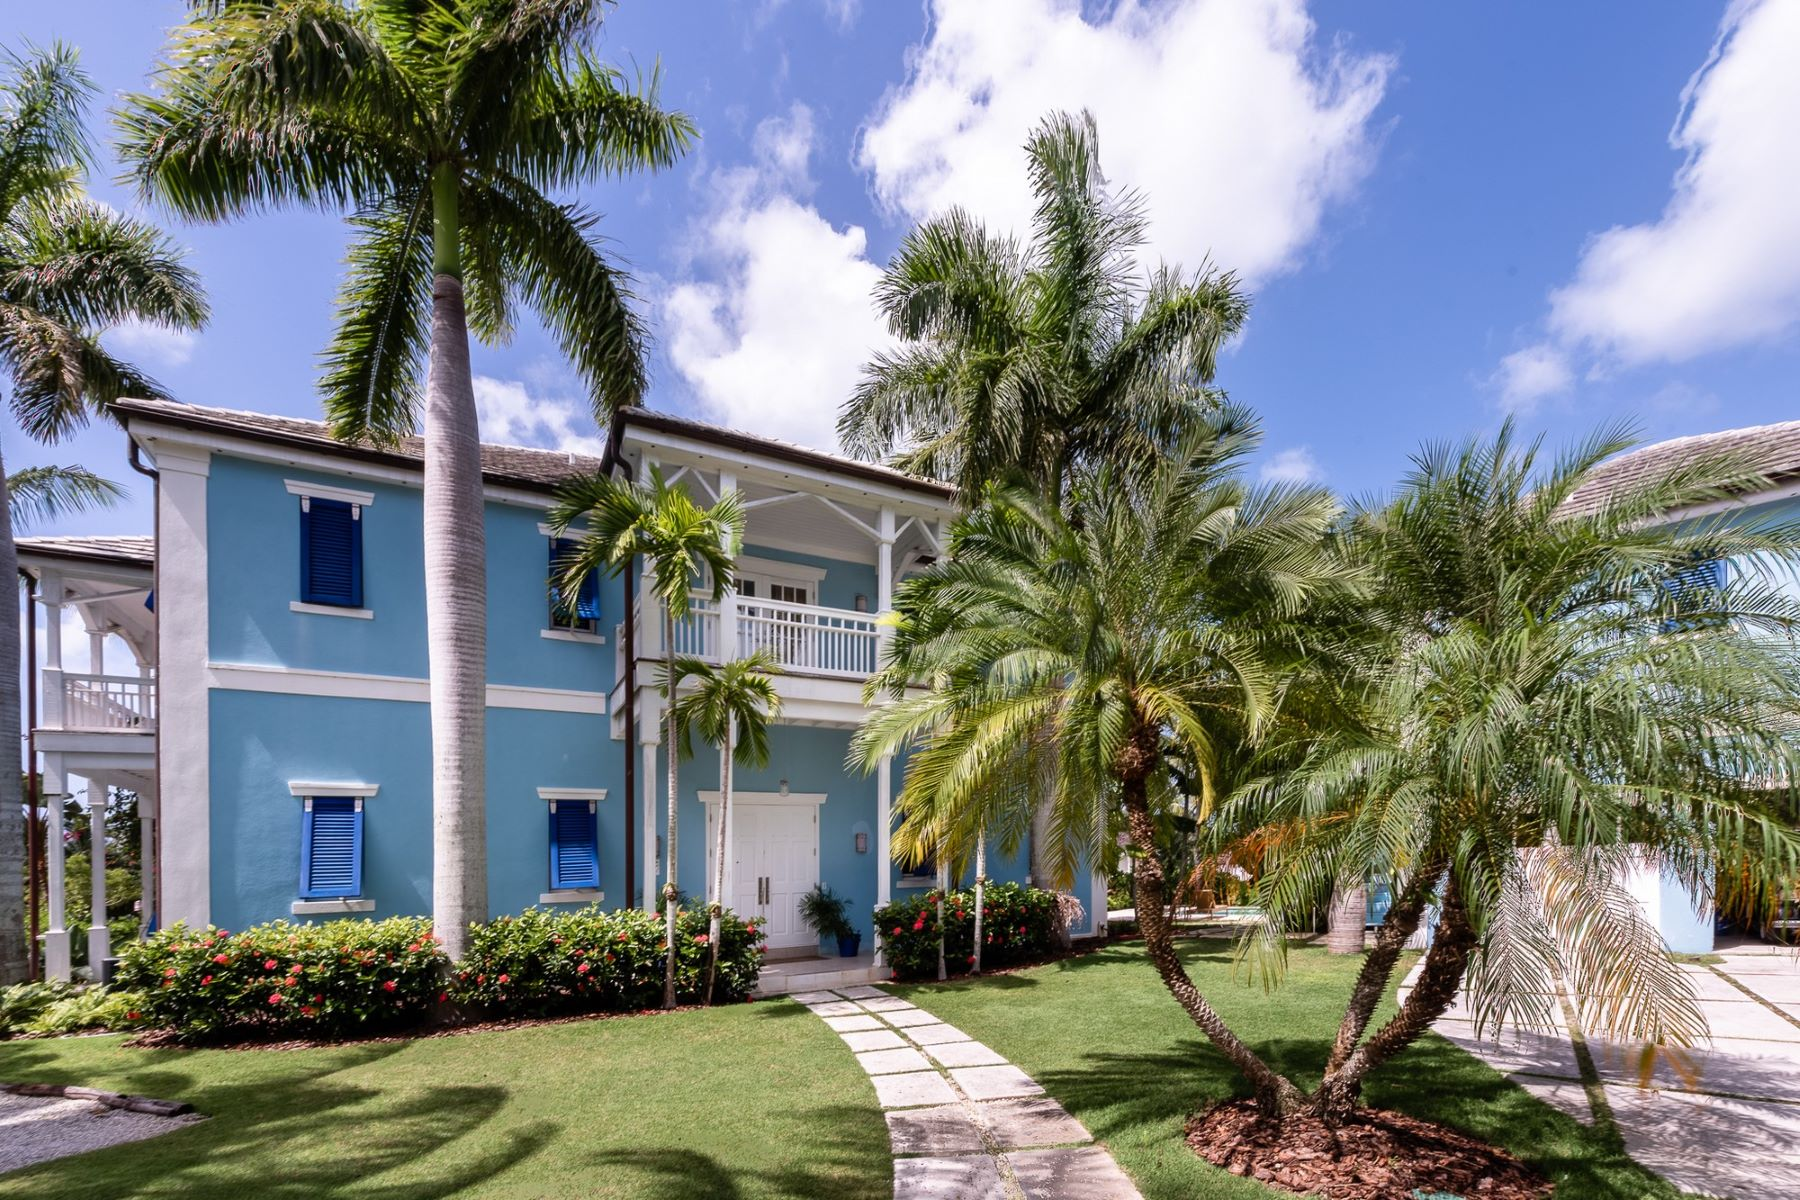 Single Family Home for Sale at 1 Dunmore Island Islands At Old Fort Bay, Old Fort Bay, Nassau And Paradise Island Bahamas